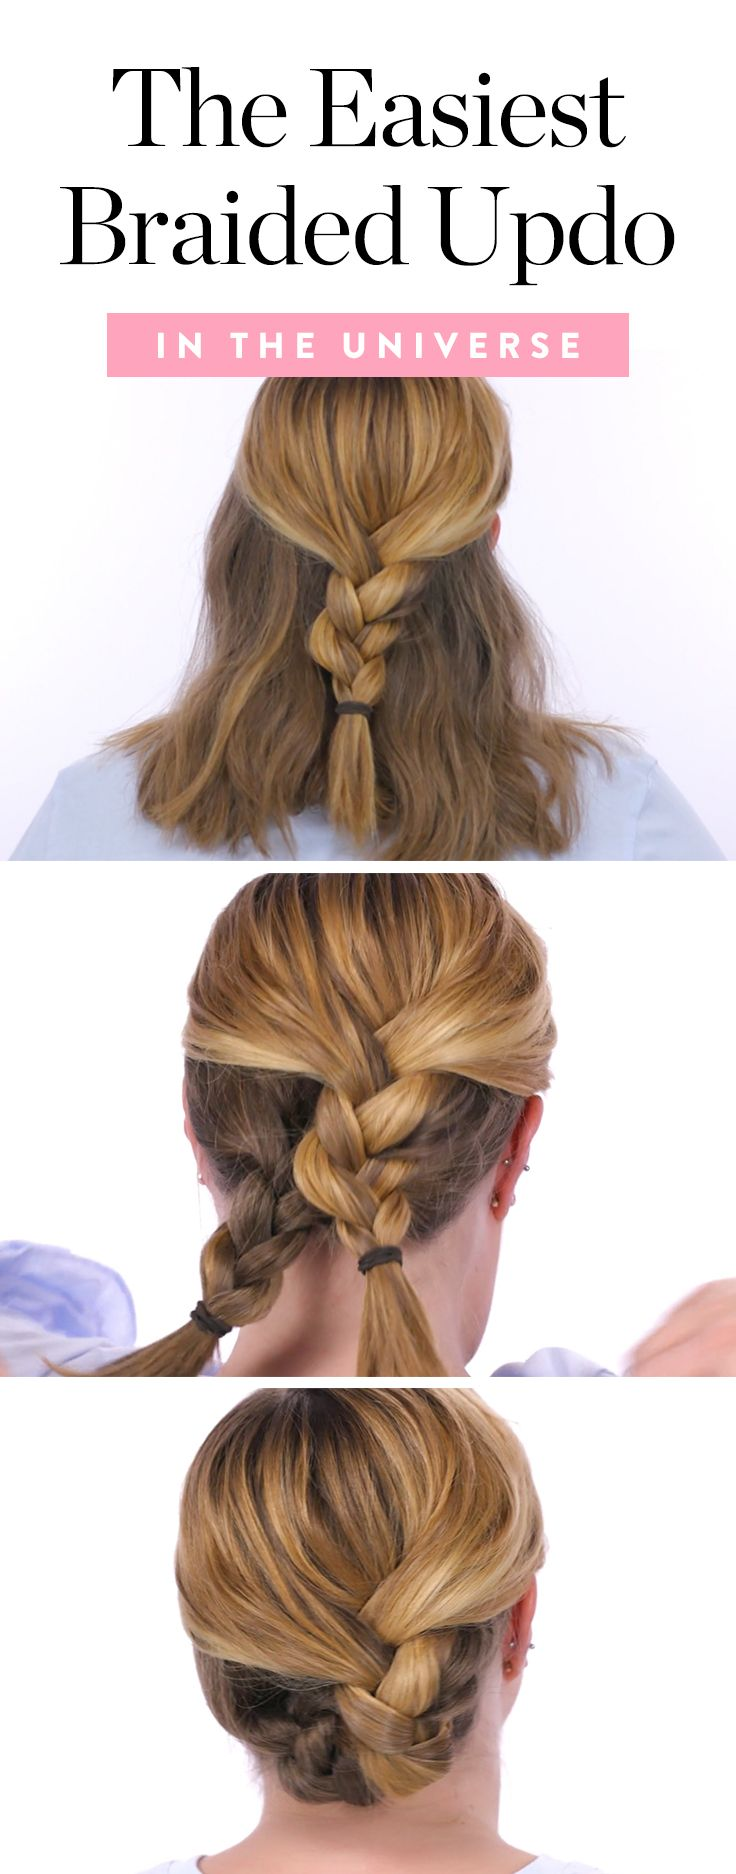 The easiest braided updo in the universe updo easy braided updo